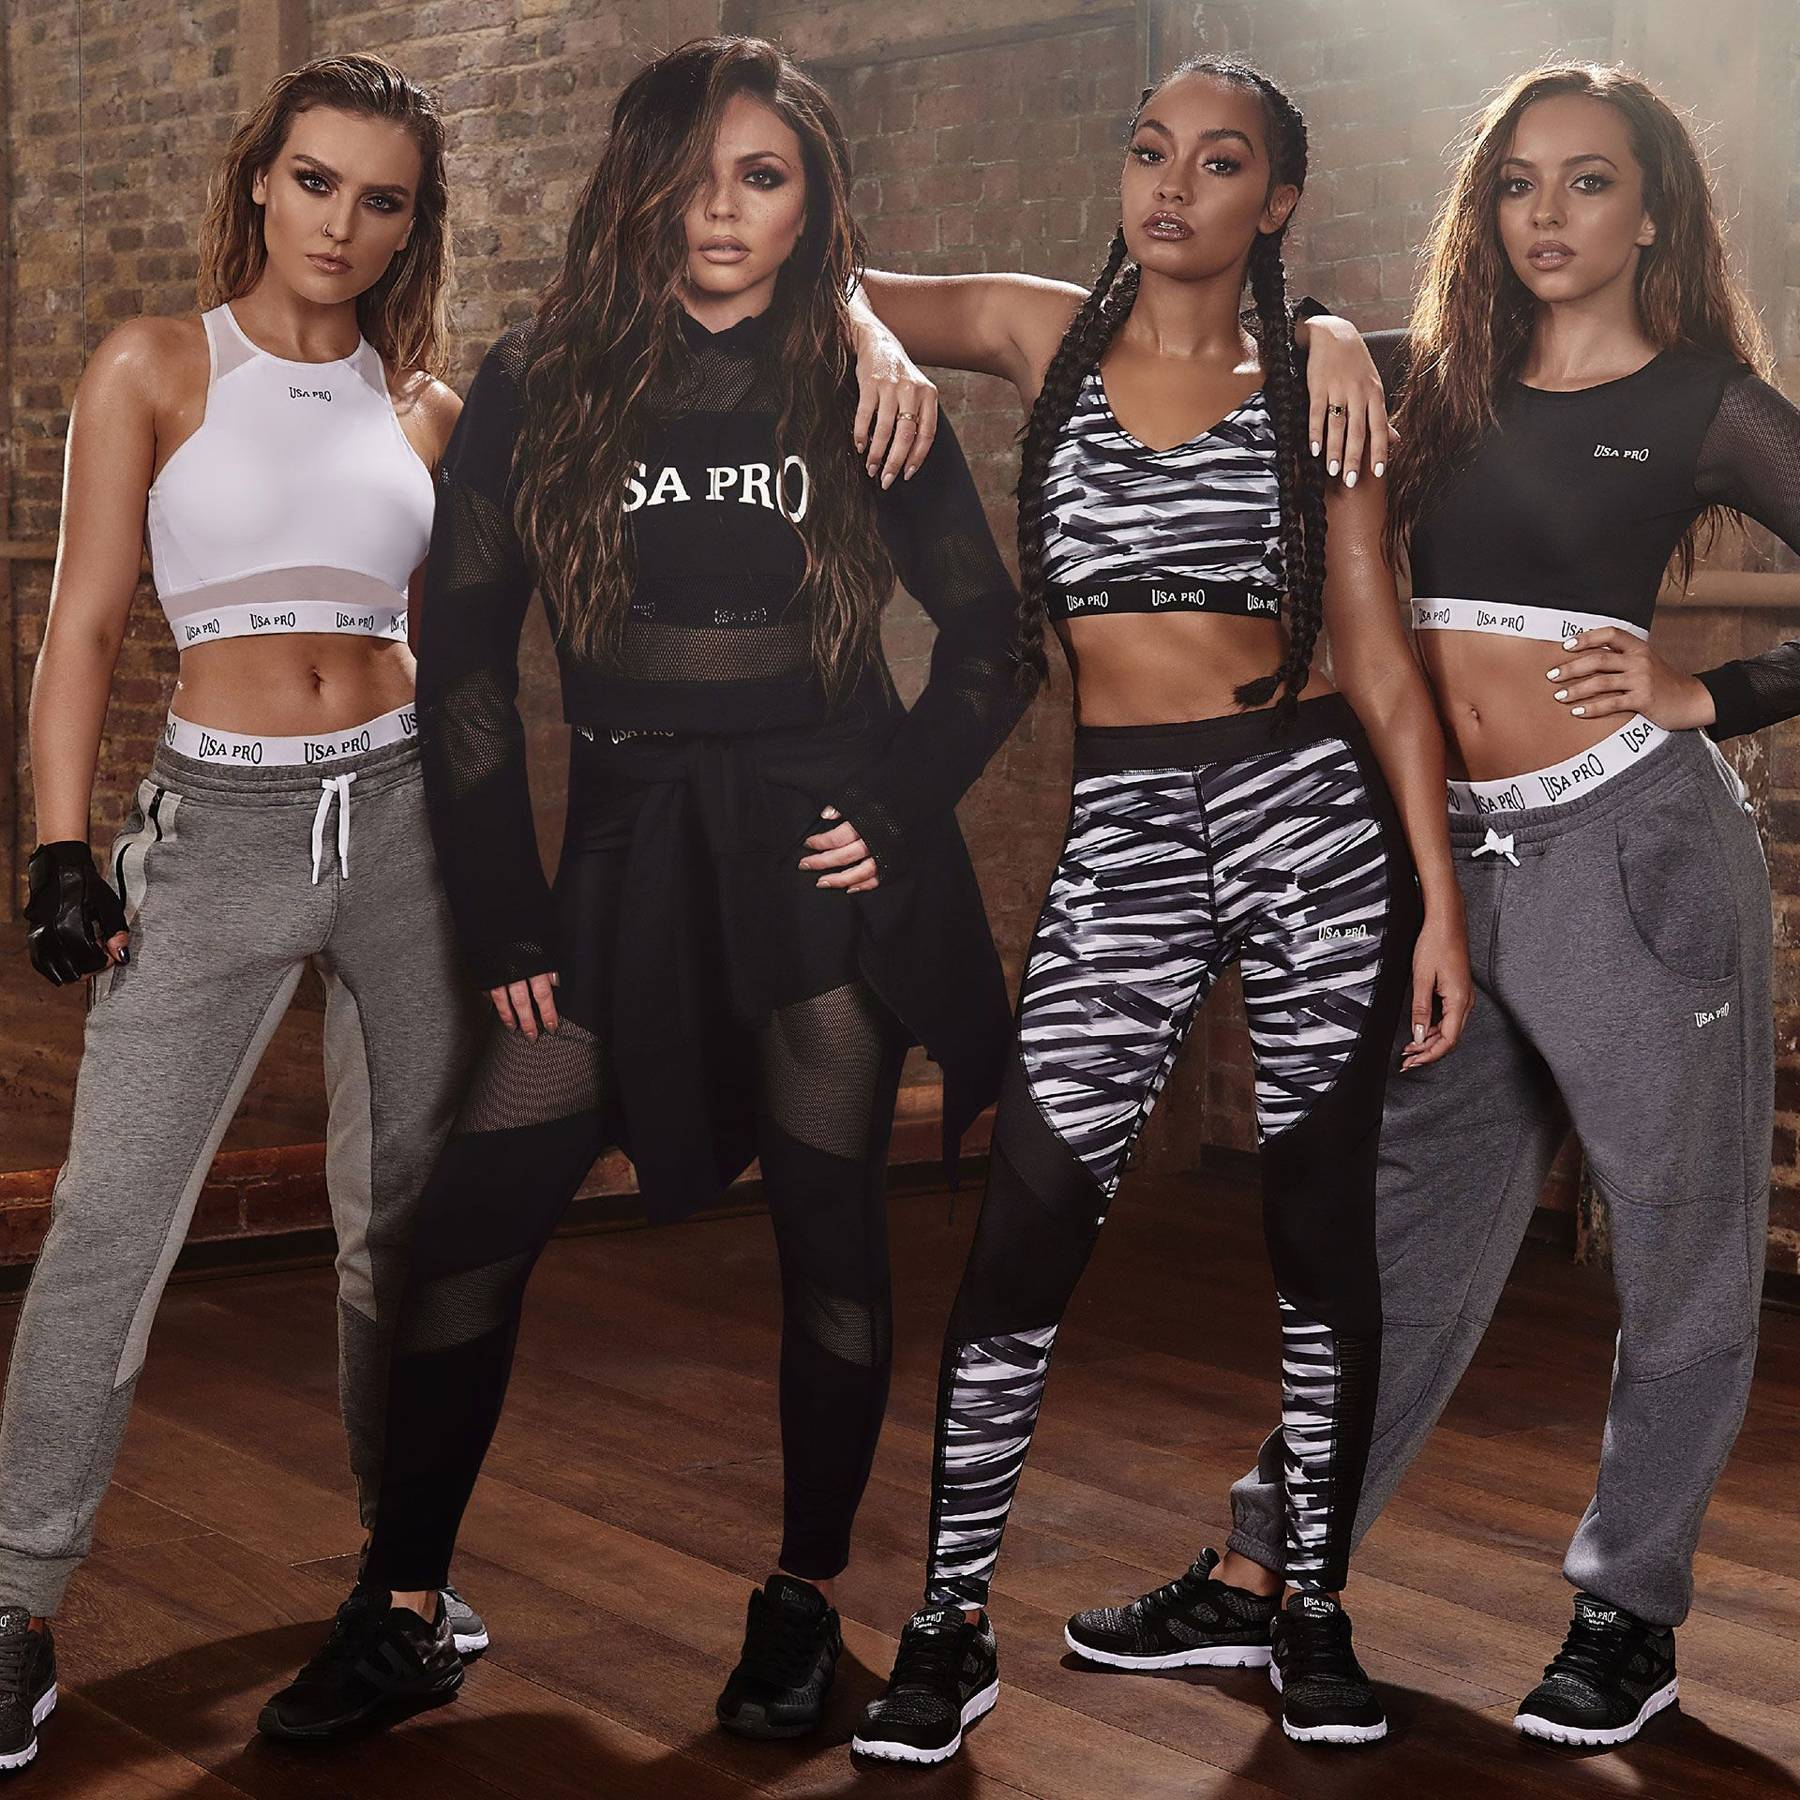 68feaf78bb Little Mix USA Pro Collection Photos Clothing Interview   Glamour UK